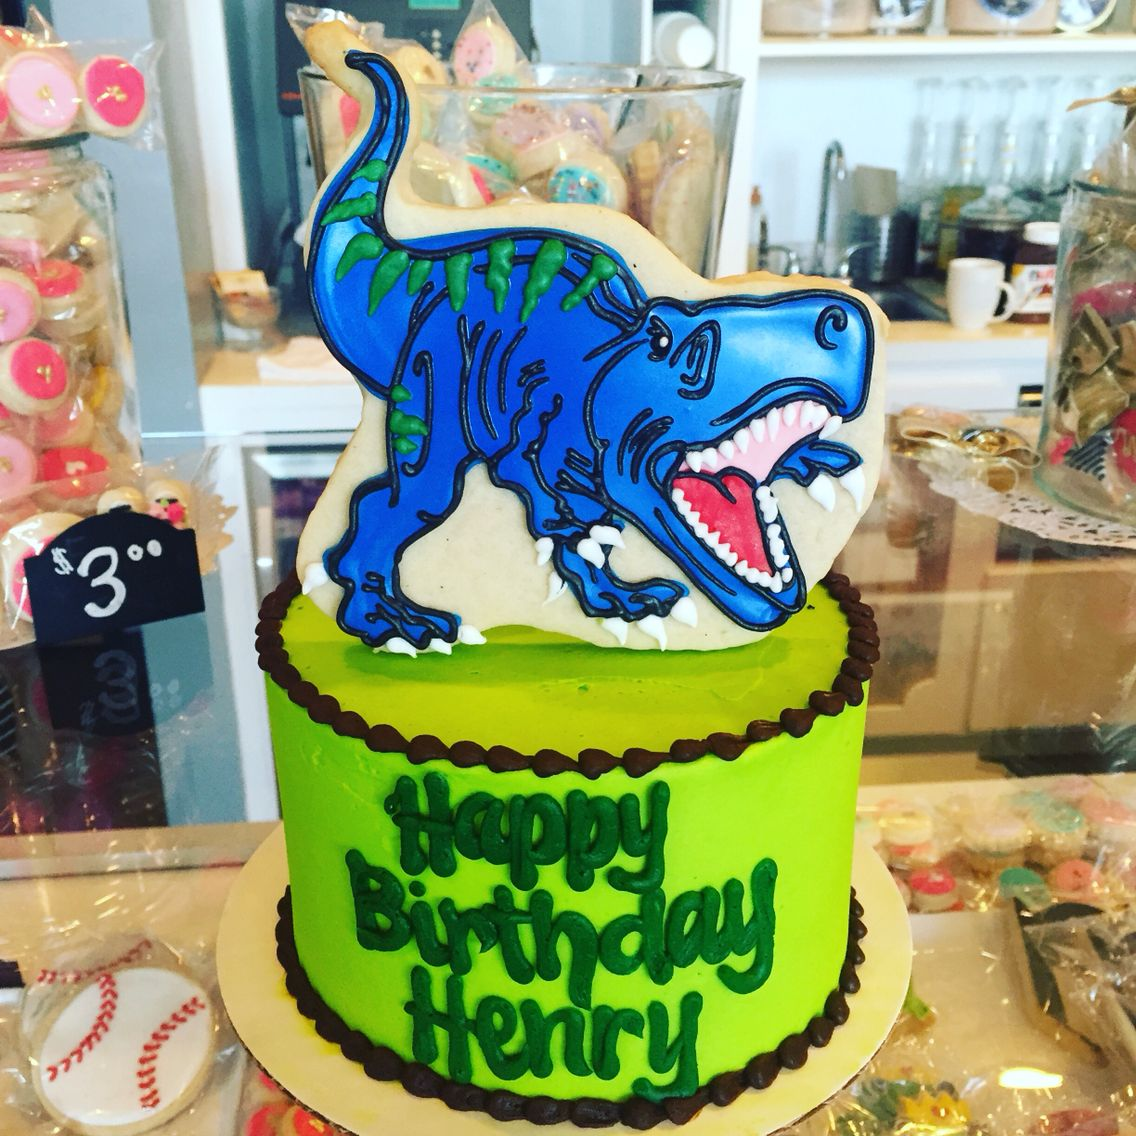 Roaring Dinosaur T Rex Birthday Cake By Hayleycakes And Cookies In Austin Texas